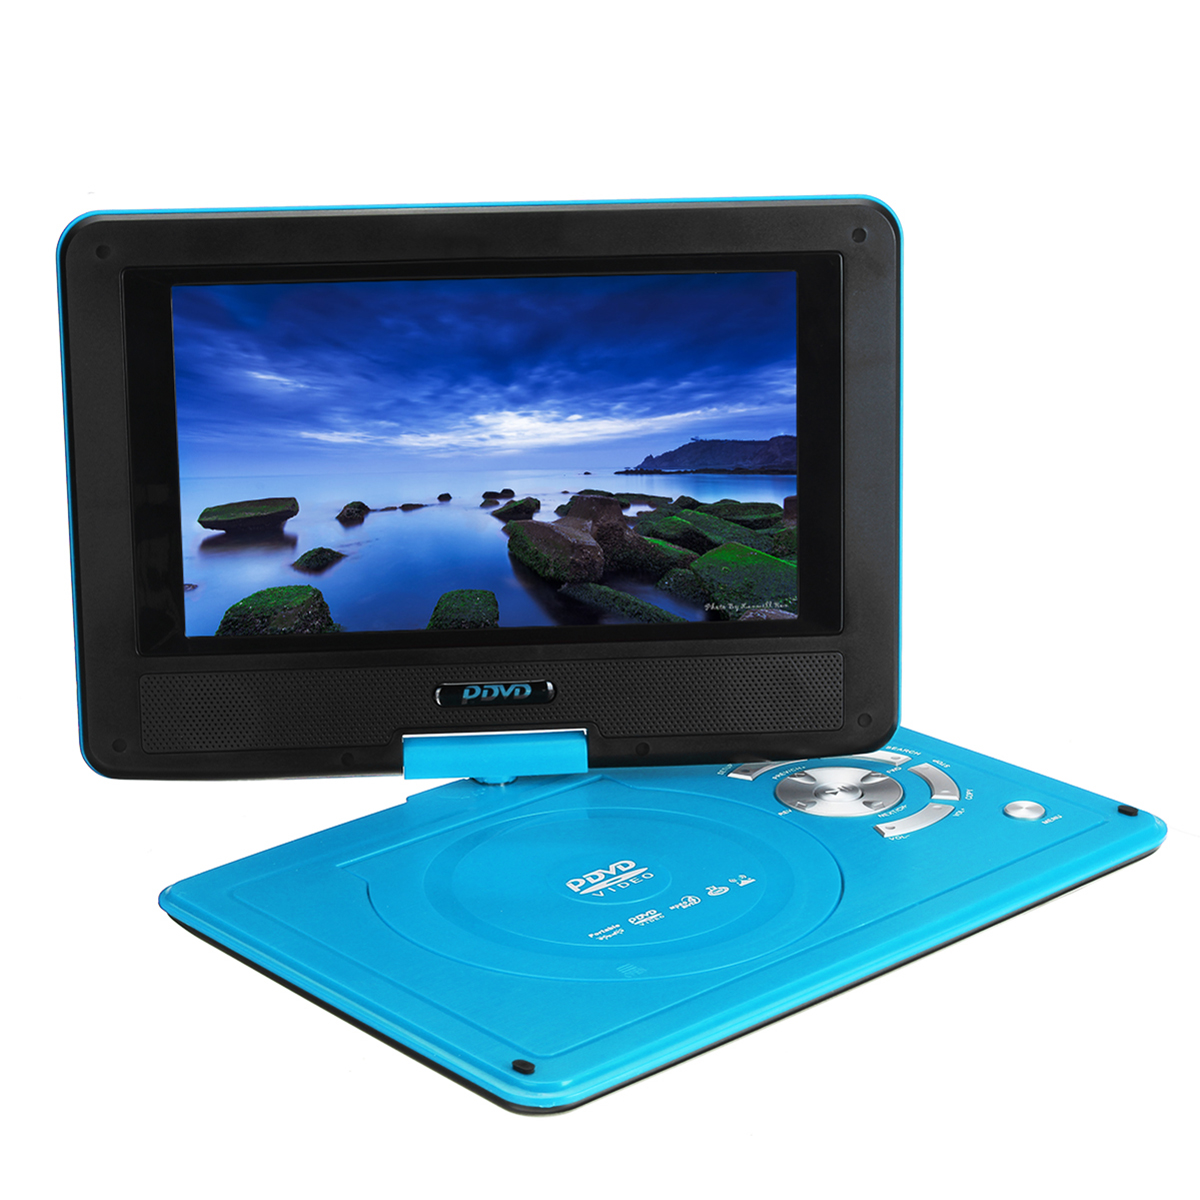 9.8 Inch Portable Car Rechargeable DVD Player Game Video Controller 270° Swivel Screen – Black